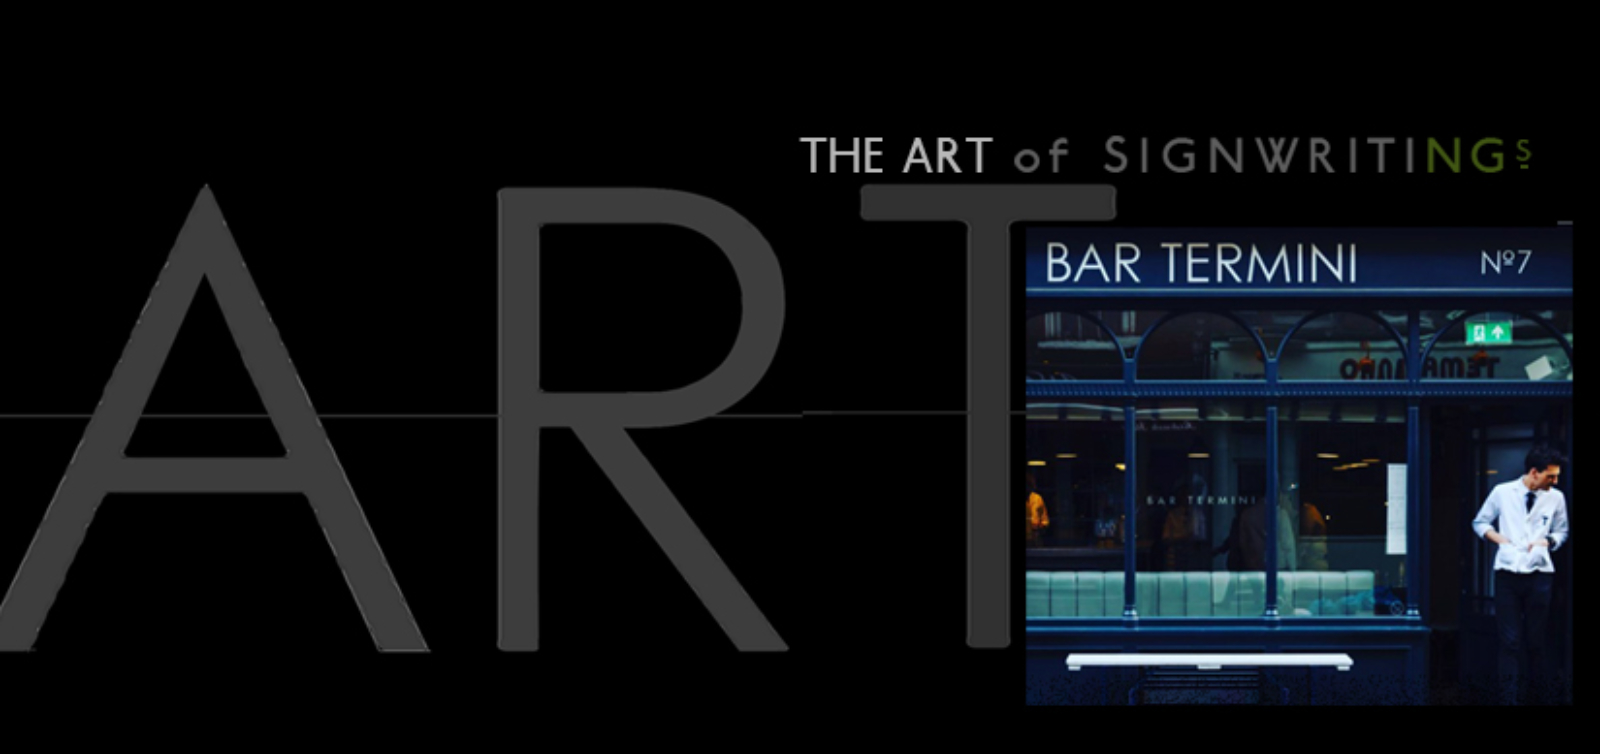 Bar termini NGS Signwriting London